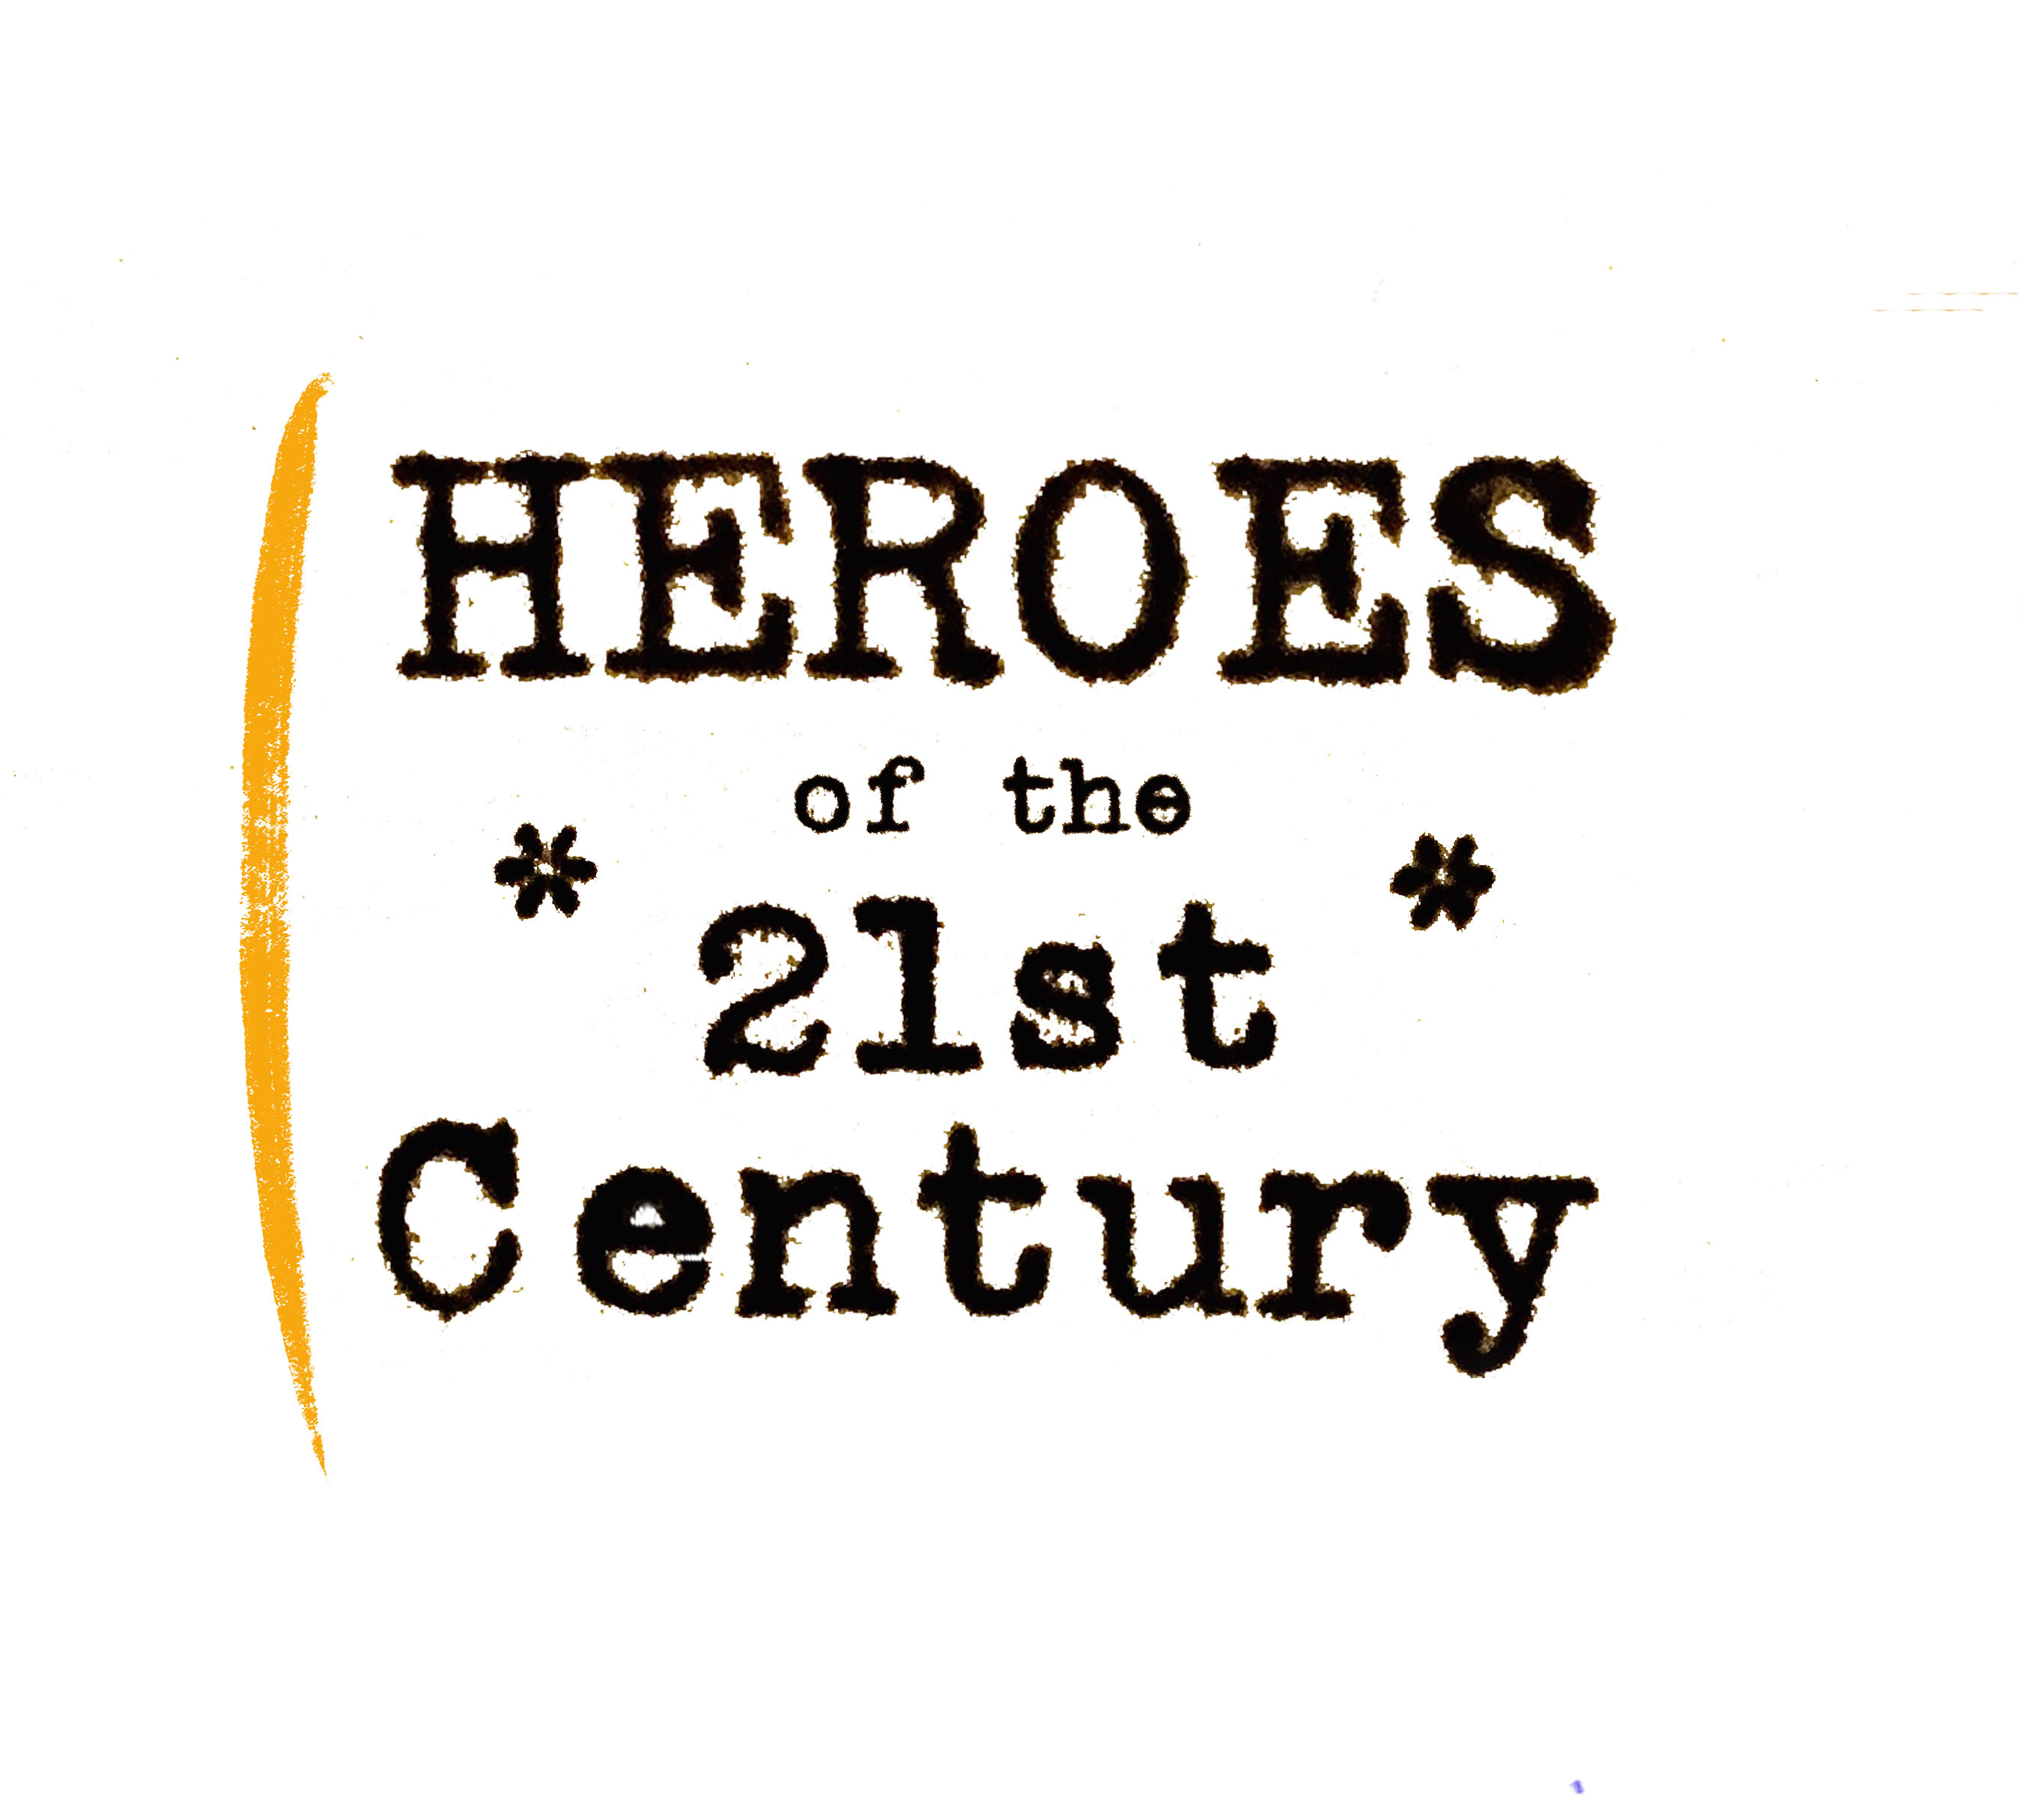 Heroes of the 21st Century - logo